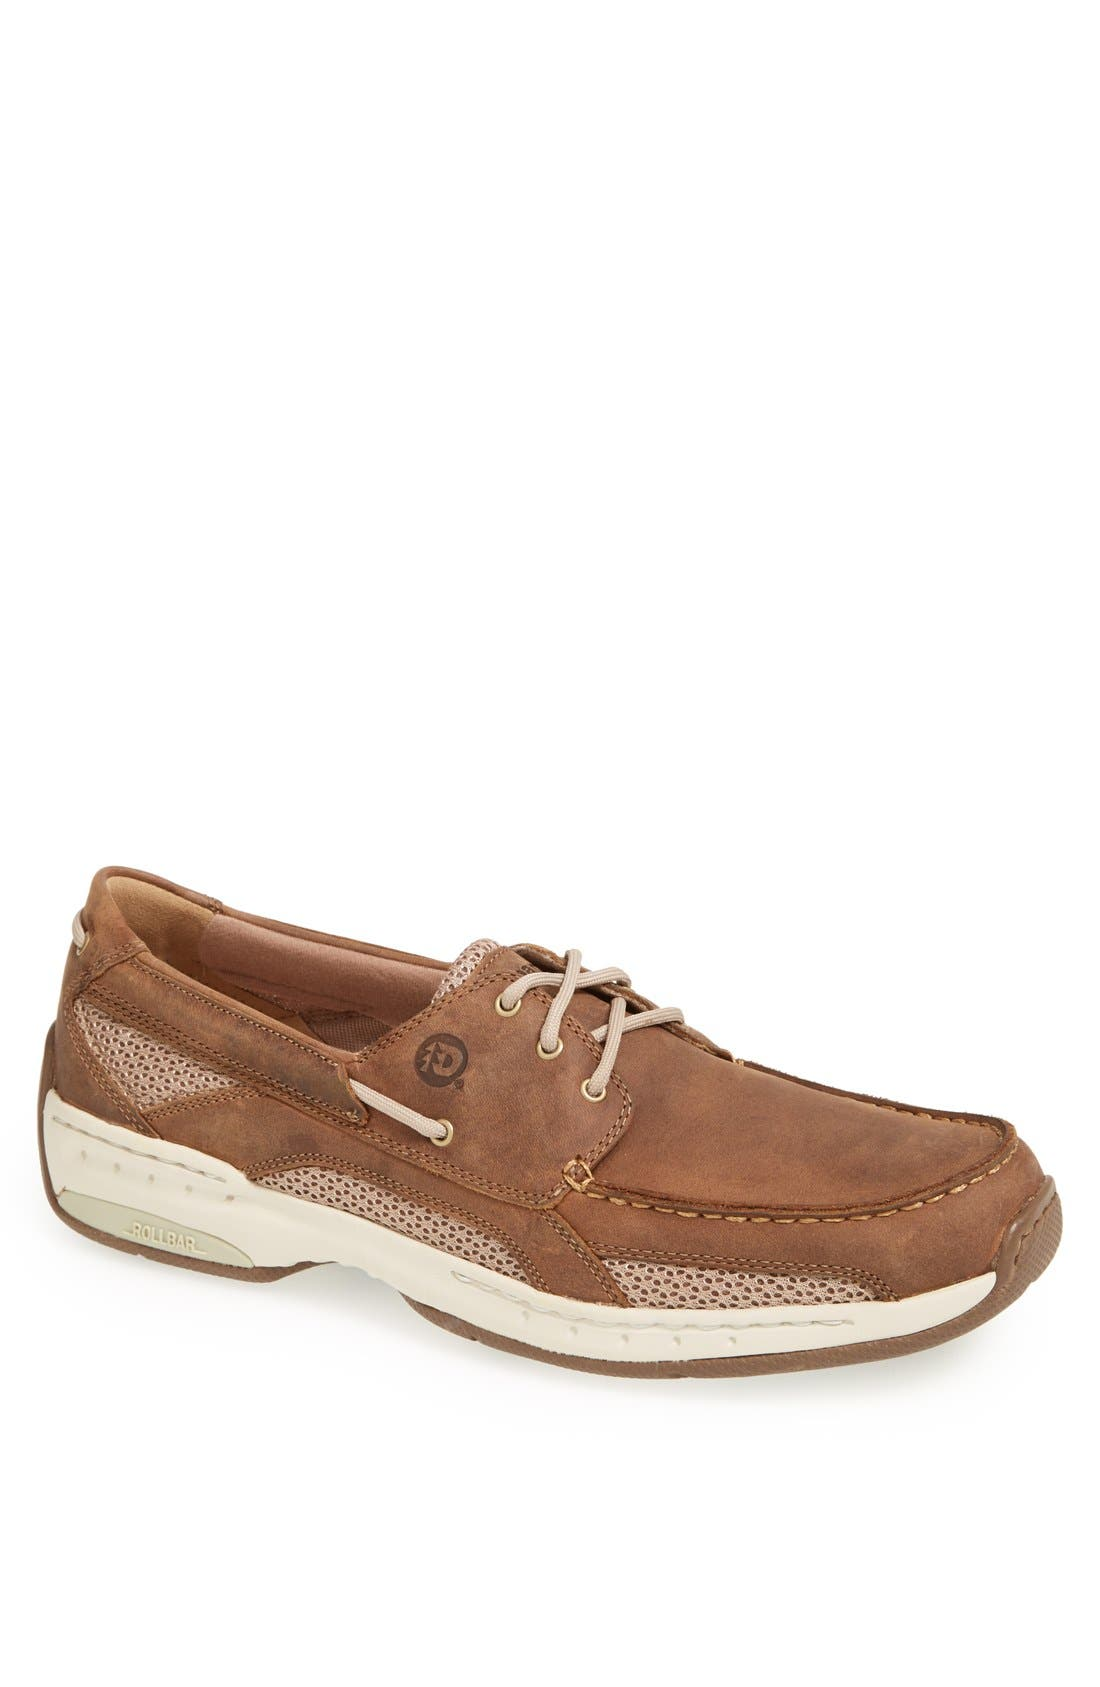 dc3667617f Dunham - Men s Casual Fashion Shoes and Sneakers